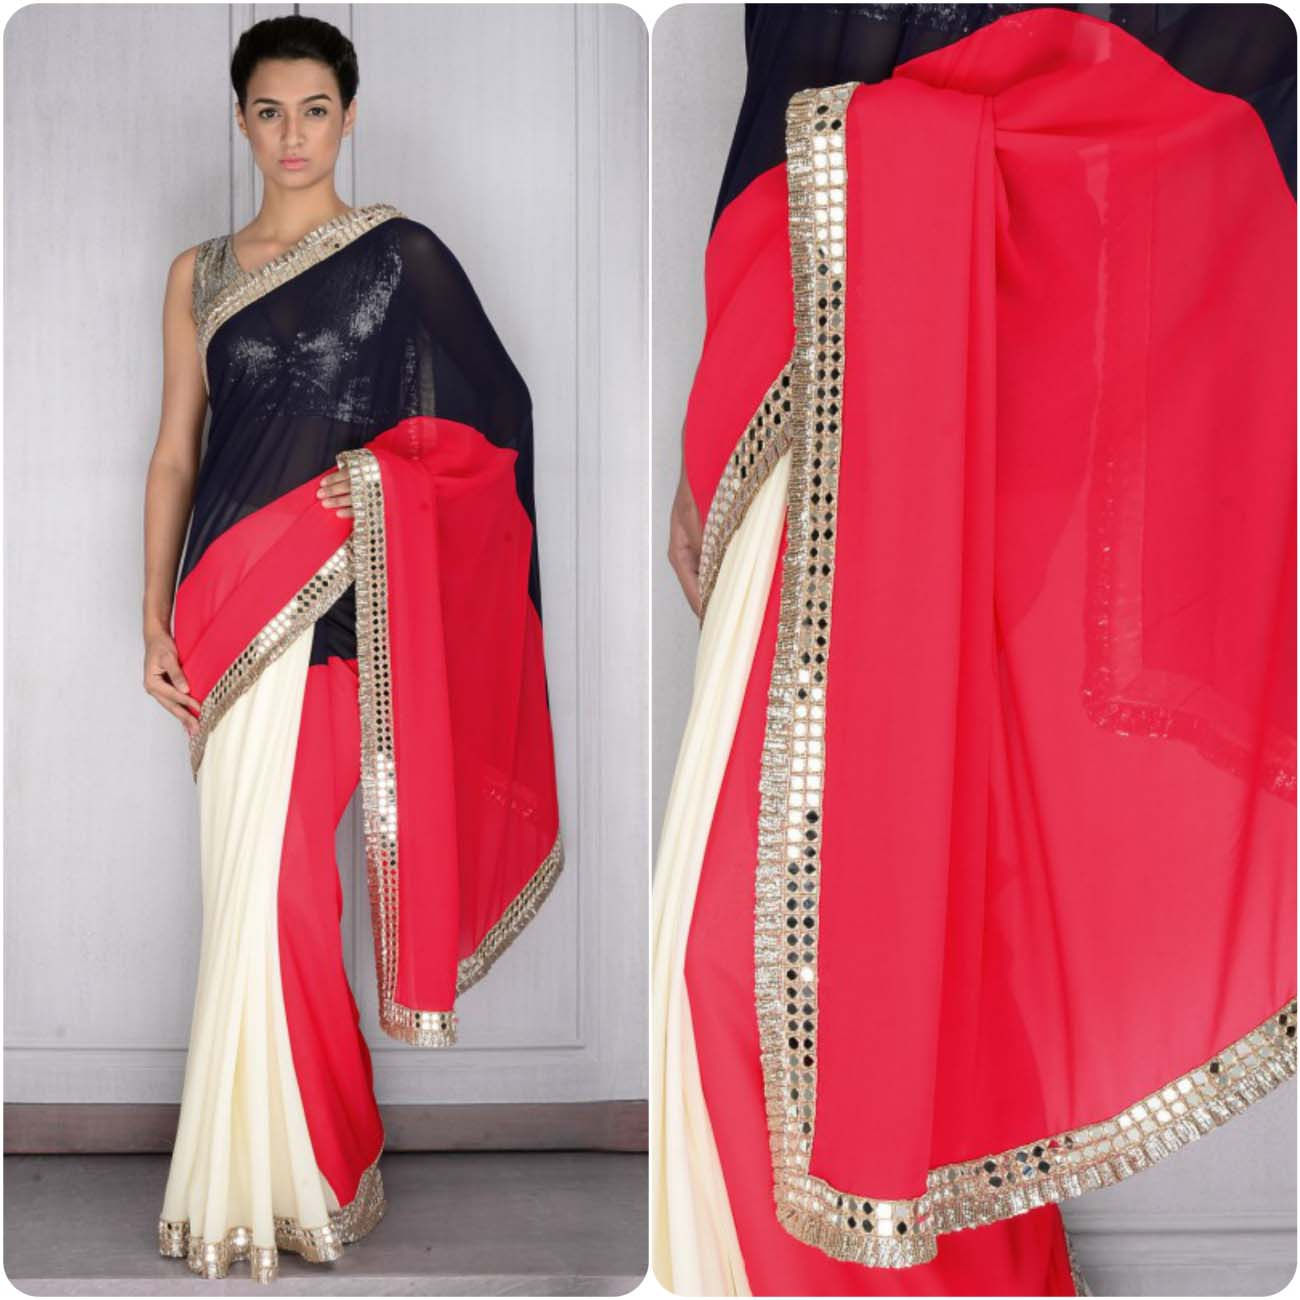 Manish Malhotra Designers Saree Collection 2016-2017...styloplanet (8)